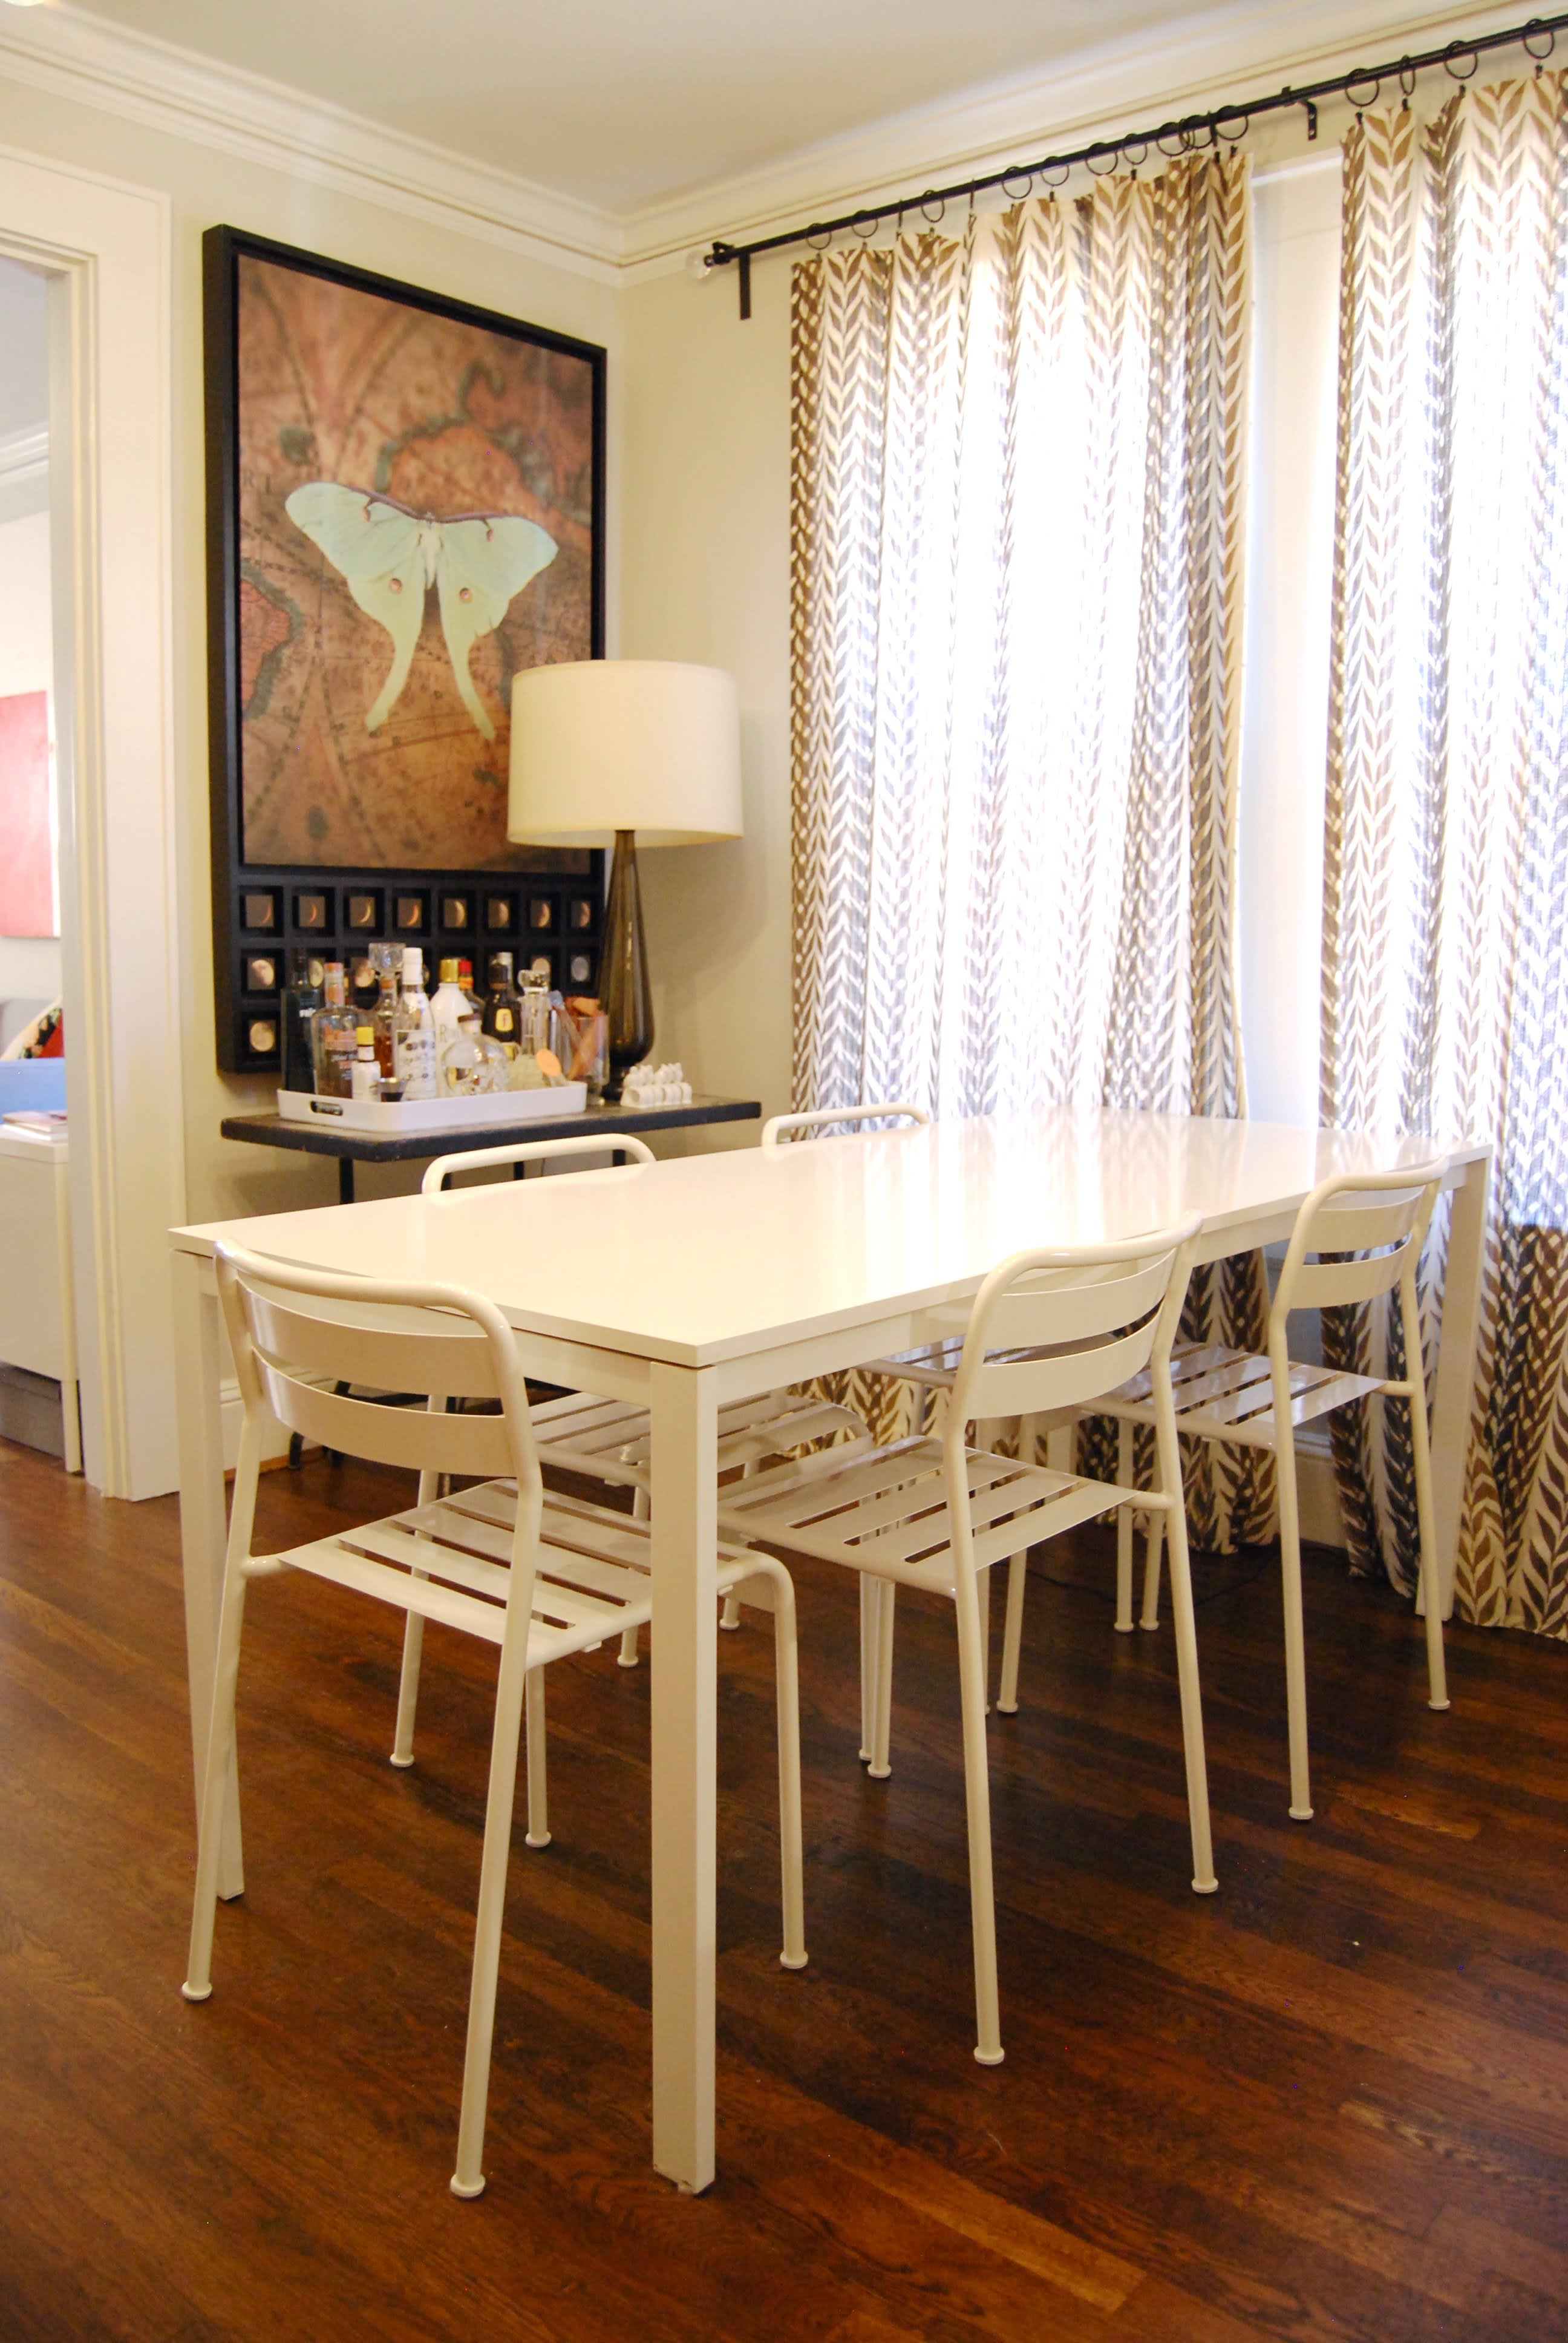 House Tour An Eclectic Mod Cottage In Atlanta Apartment